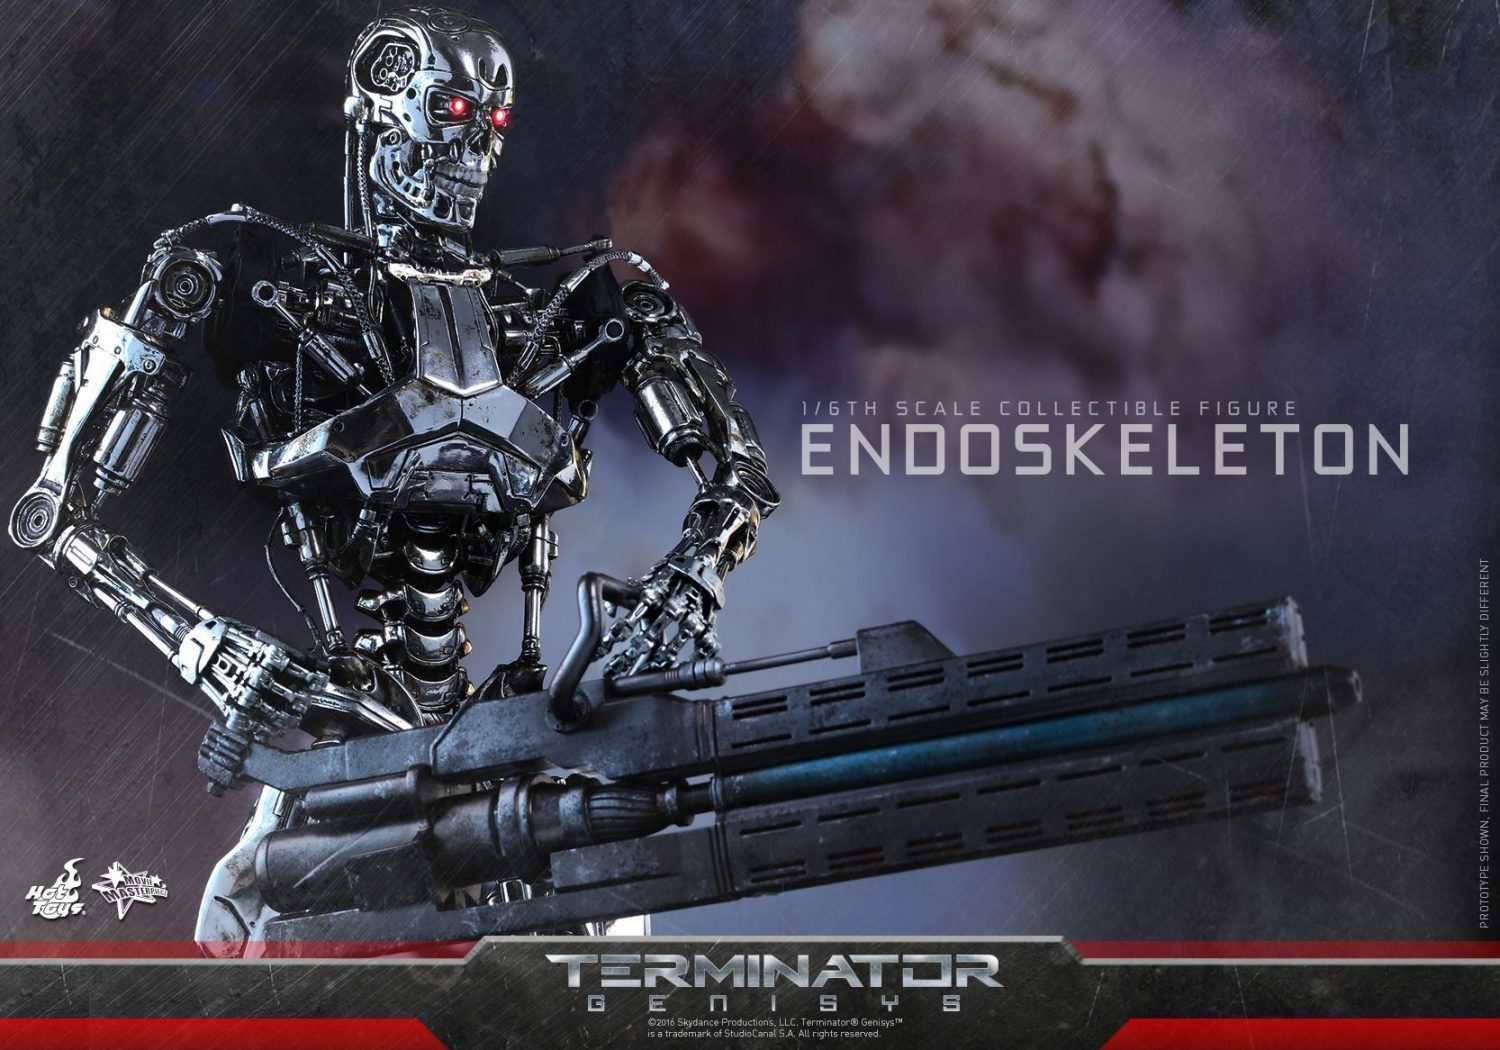 Hot Toys Terminator: Genisys T-800 Endoskeleton Sixth Scale Figure Pre-Orders